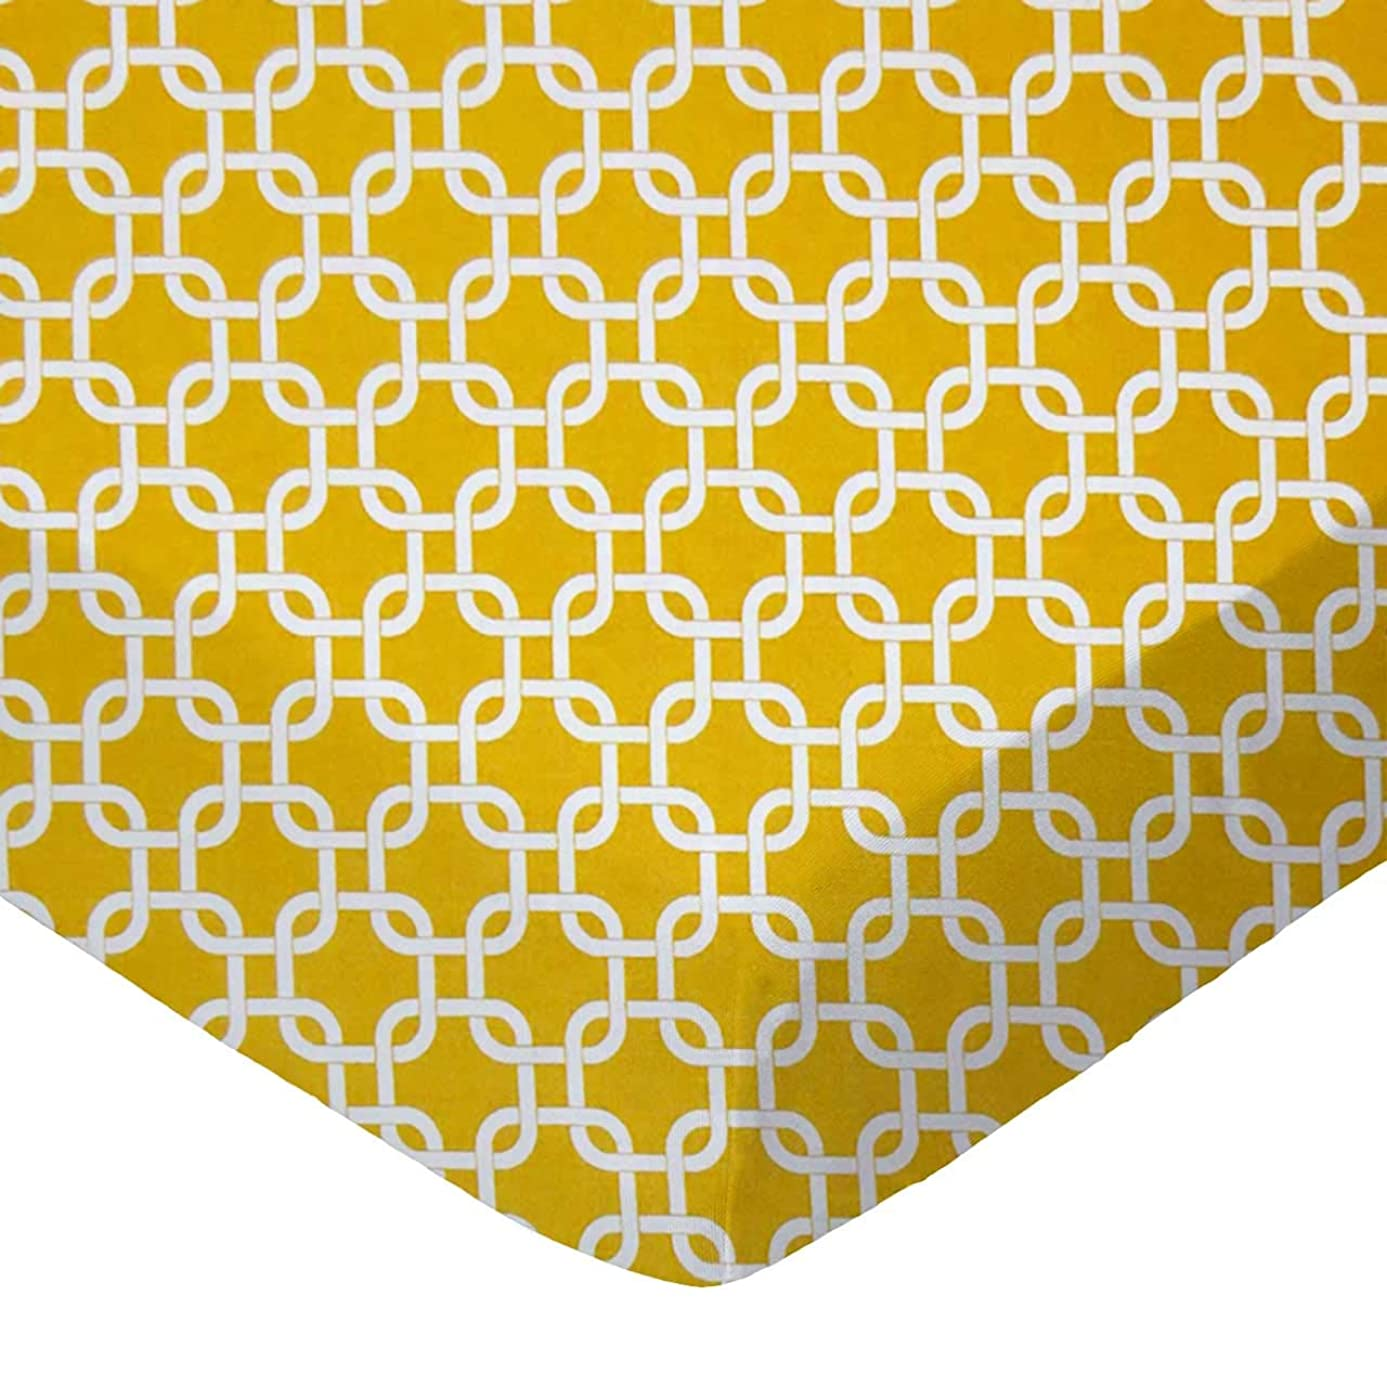 SheetWorld Fitted Crib / Toddler Sheet - Mustard Yellow Links - Made In USA